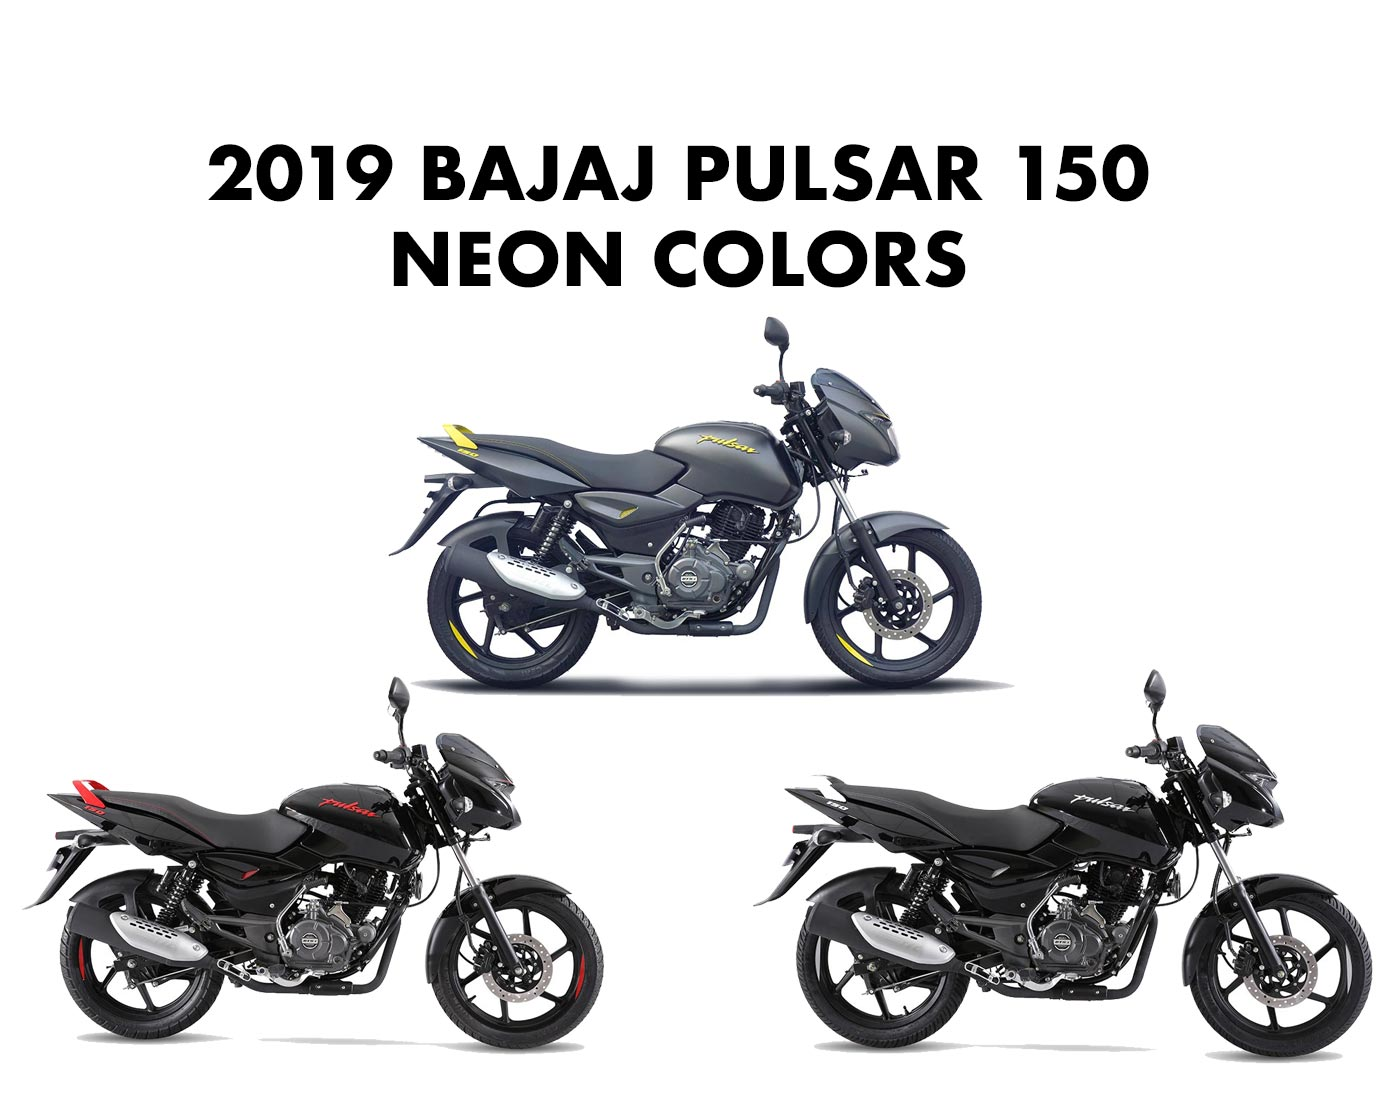 2019 Bajaj Pulsar 150 Neon Colors